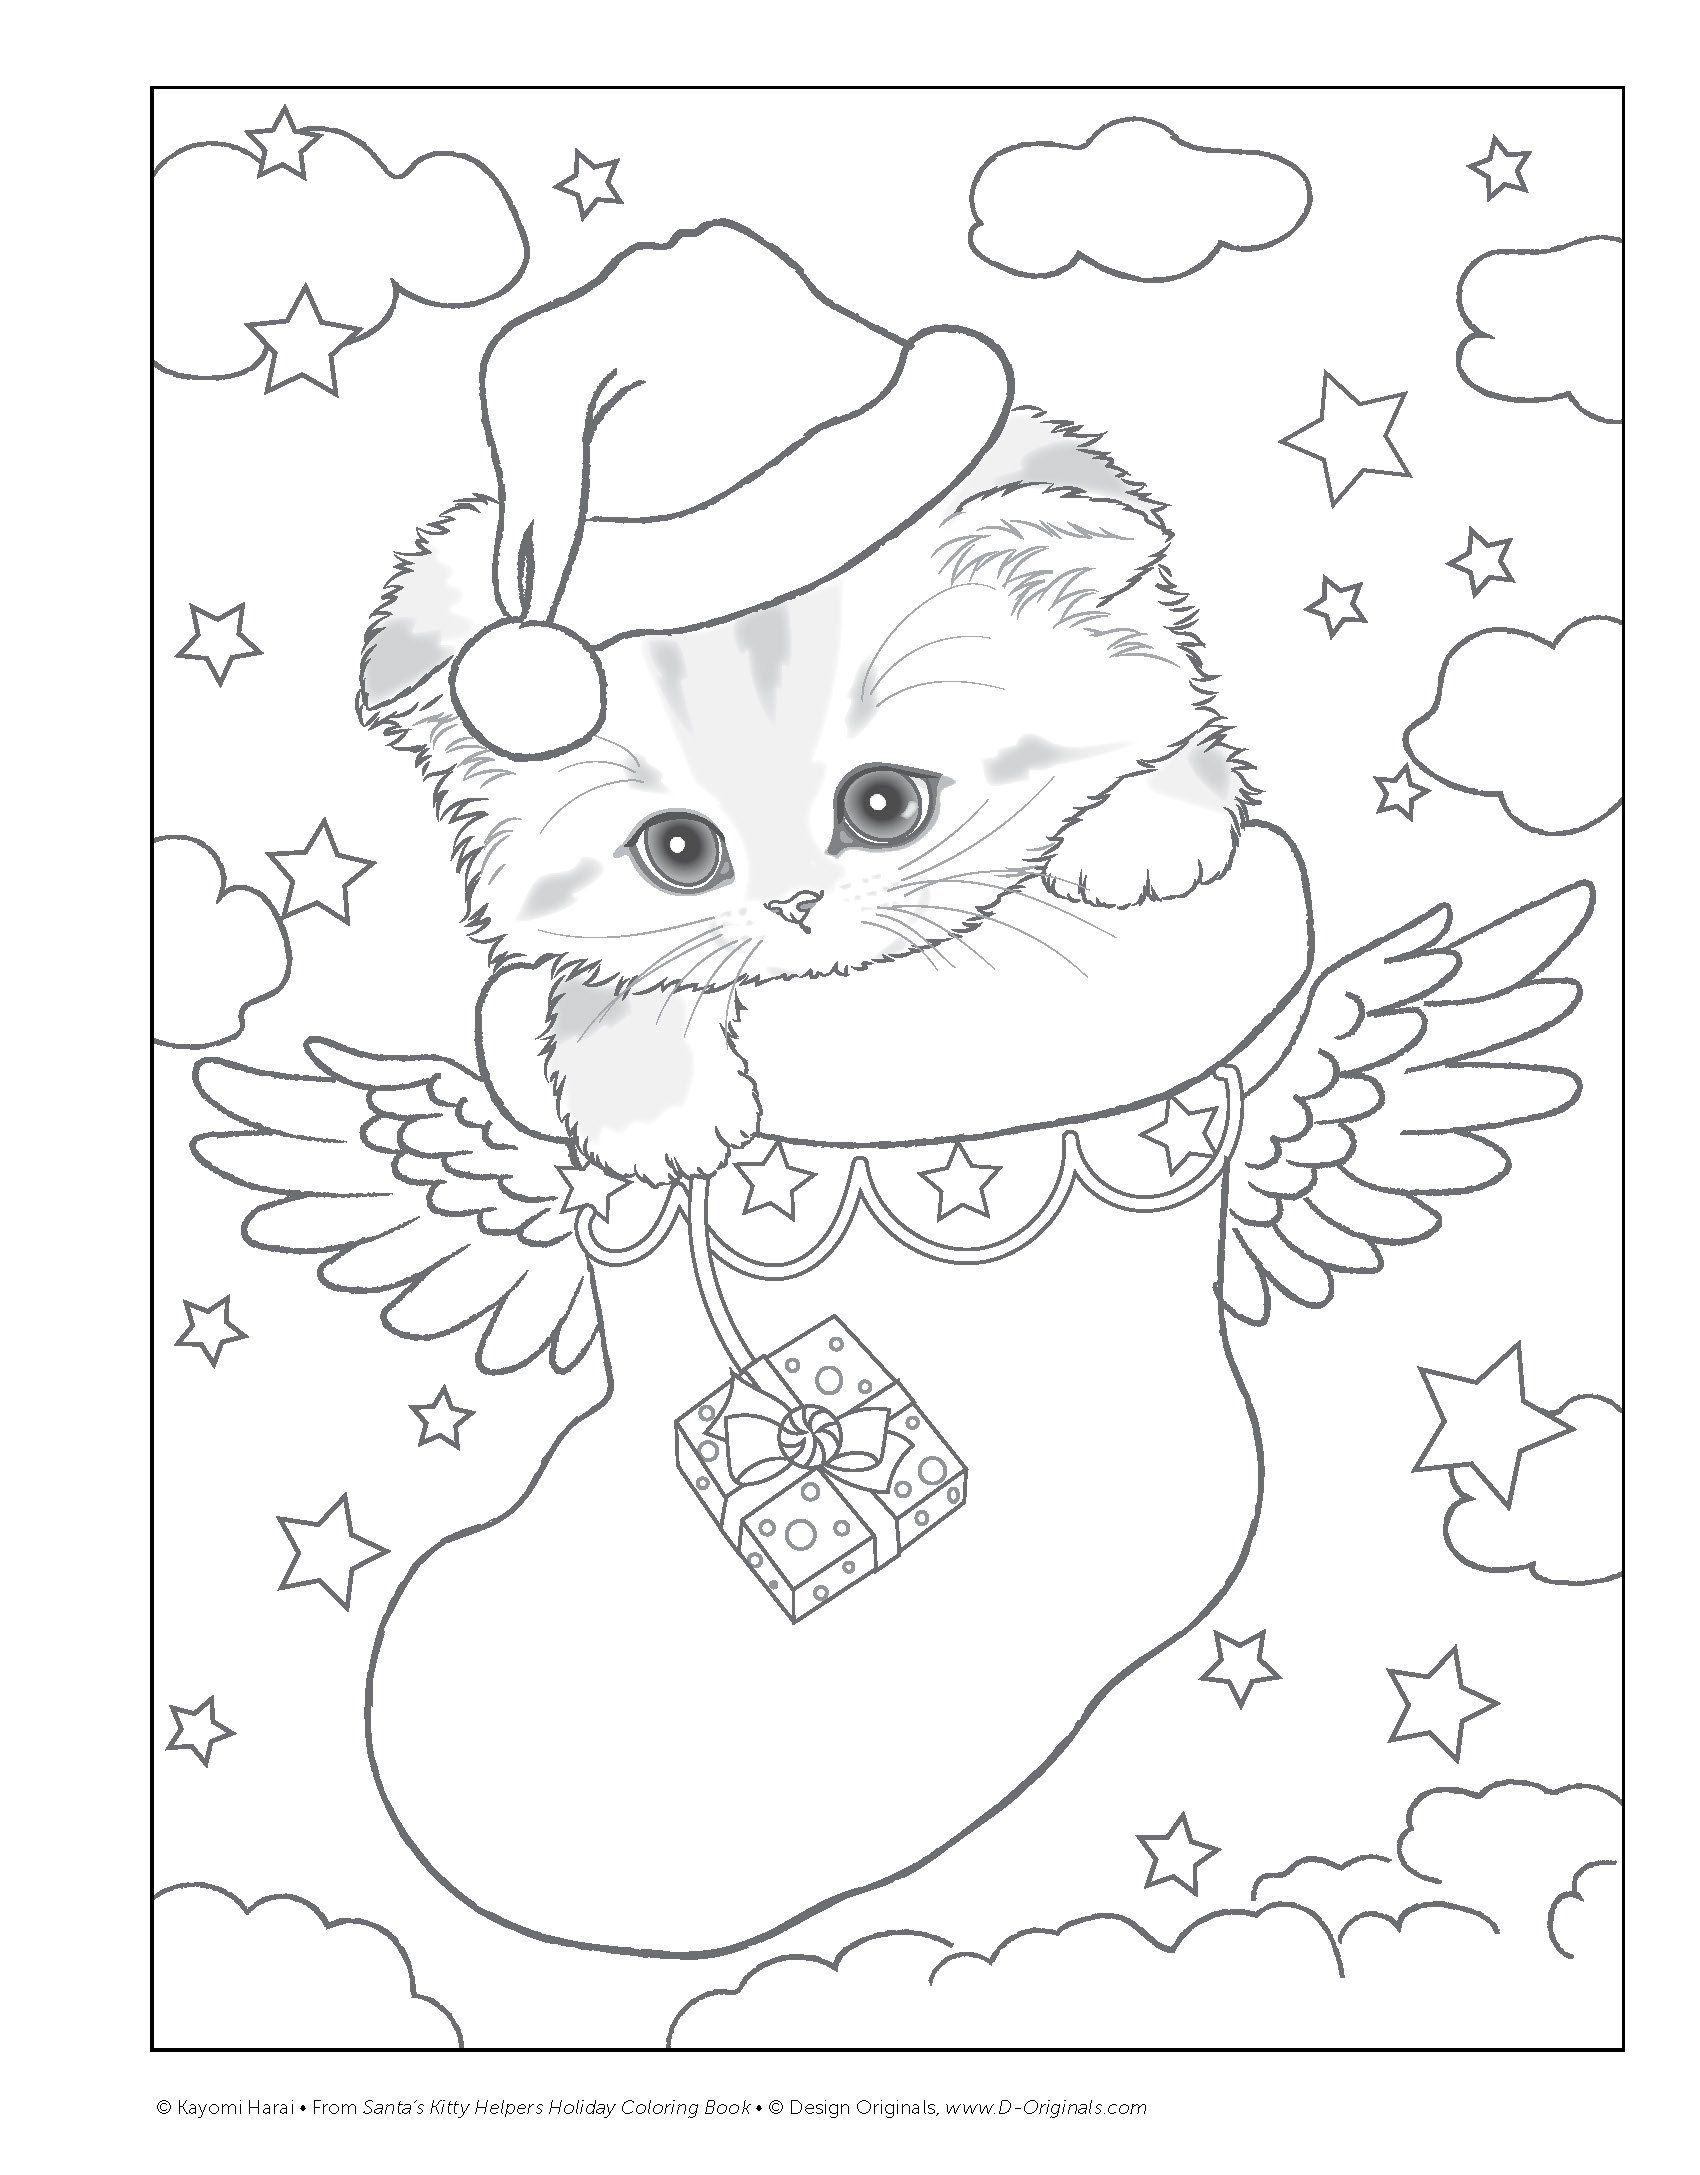 Santa S Kitty Helpers Holiday Coloring Book Design Originals Kayomi Harai 0023863059 Christmas Coloring Sheets Christmas Coloring Pages Cute Coloring Pages